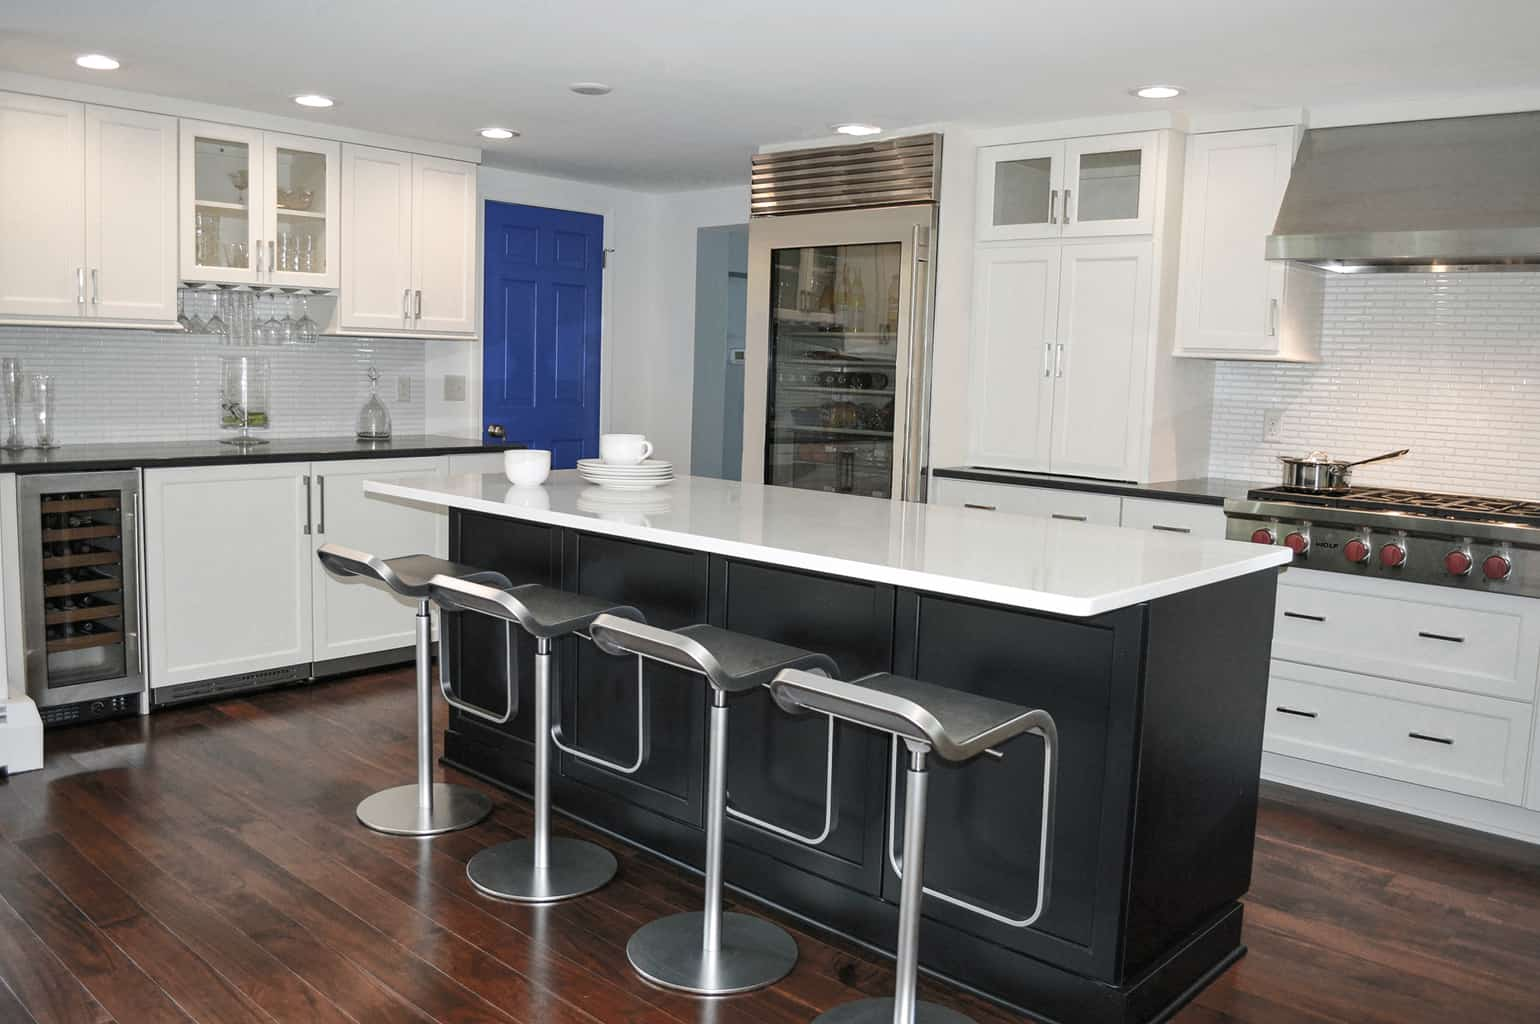 Irresistible Transitional Cabinetry No No Neutralcolors Vs Transitional Kitchen Design Professional Kitchen Designers Near Me Certified Kitchen Designers Near Me houzz 01 Kitchen Designers Near Me